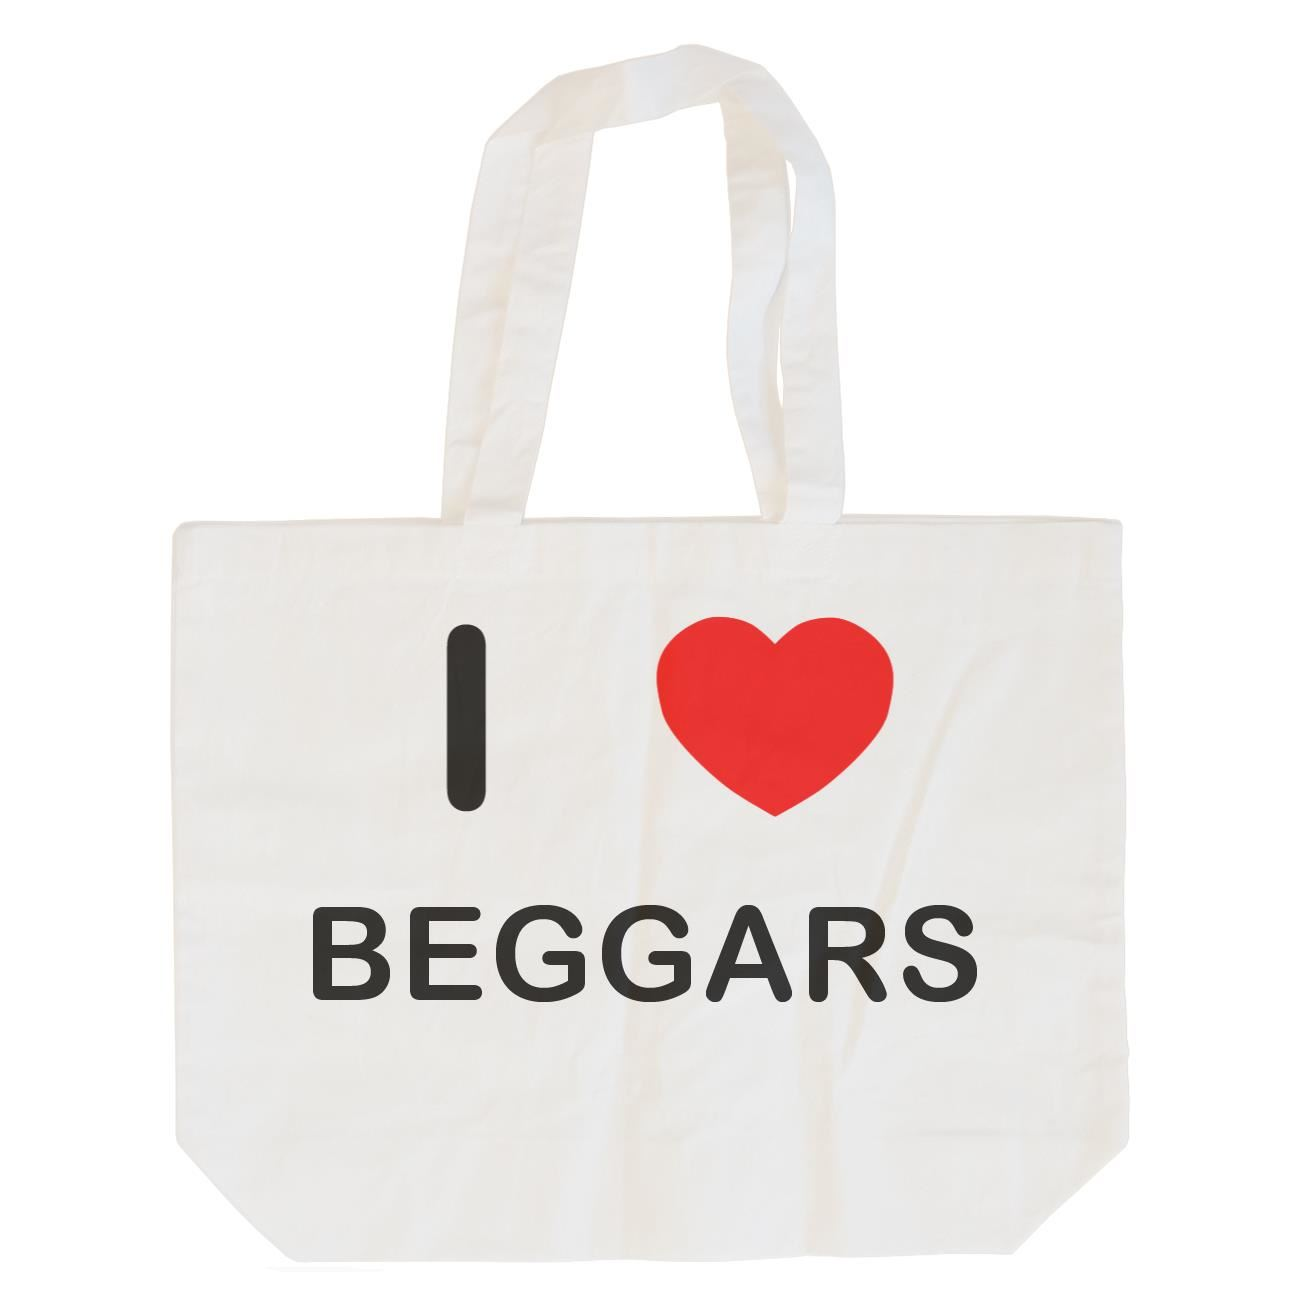 I Love Beggars - Cotton Bag   Size choice Tote, Shopper or Sling